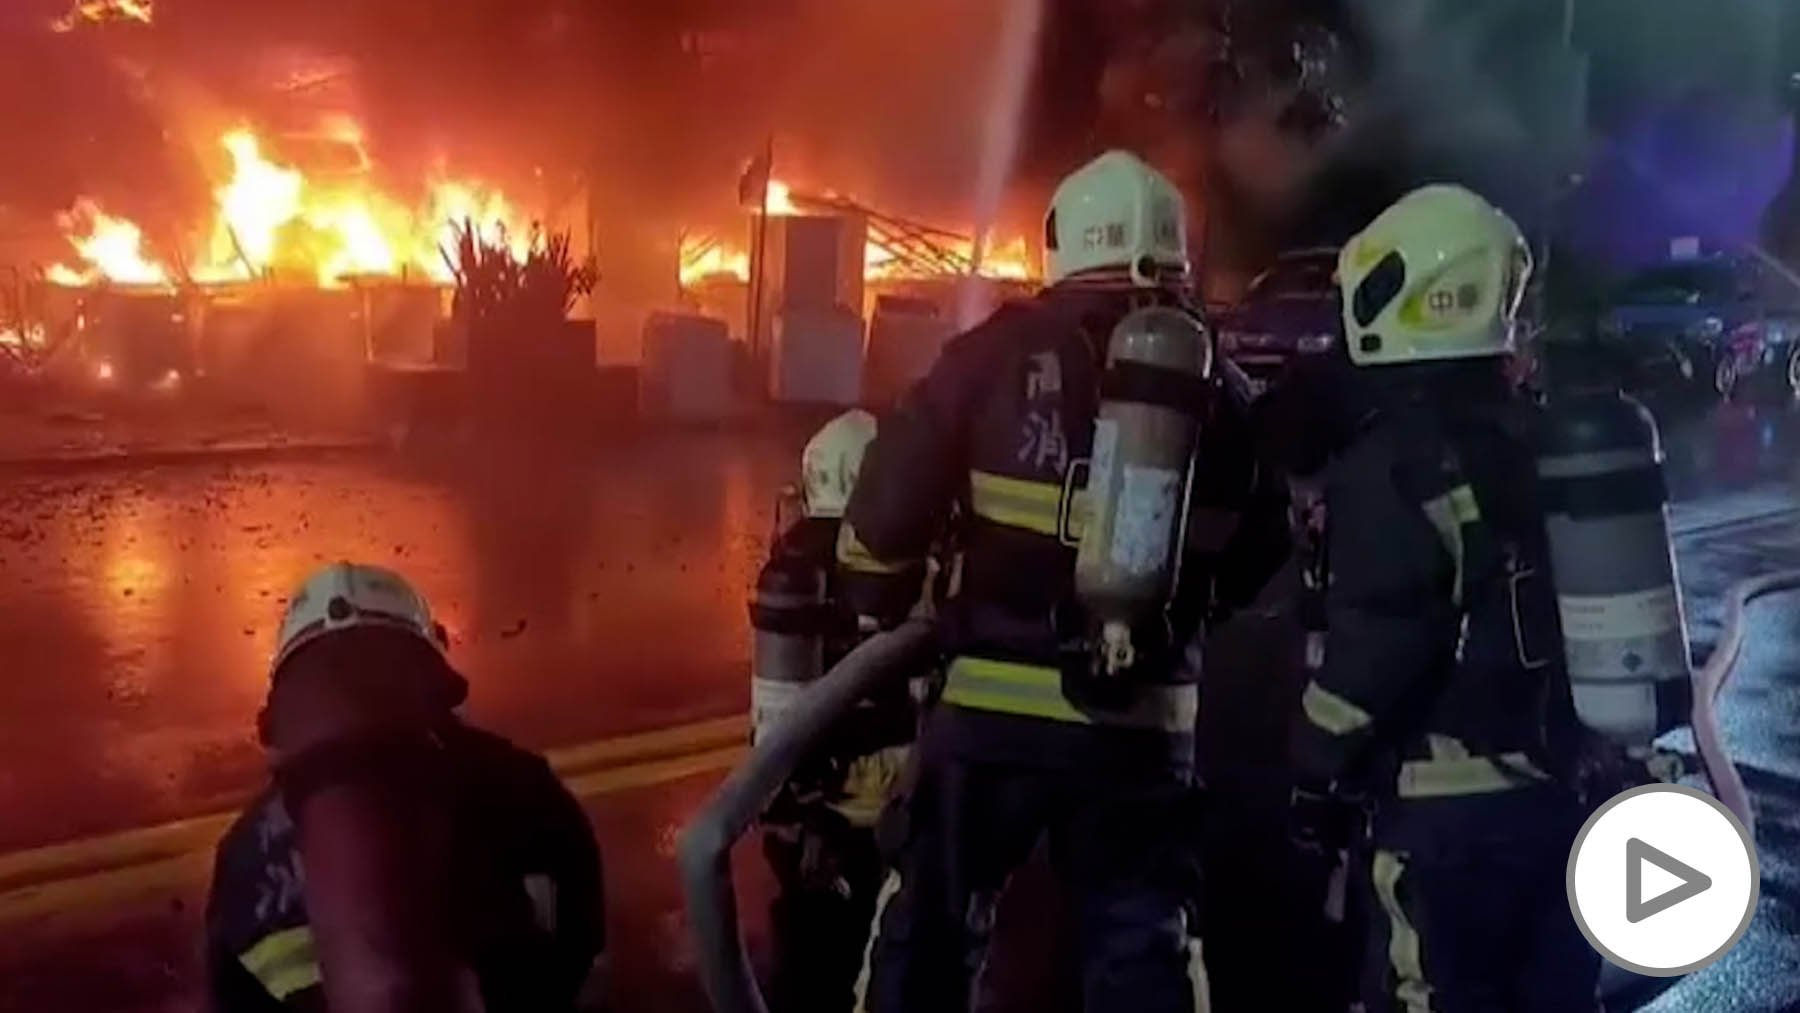 50 Killed by Fire in 13-Story Building in Taiwan